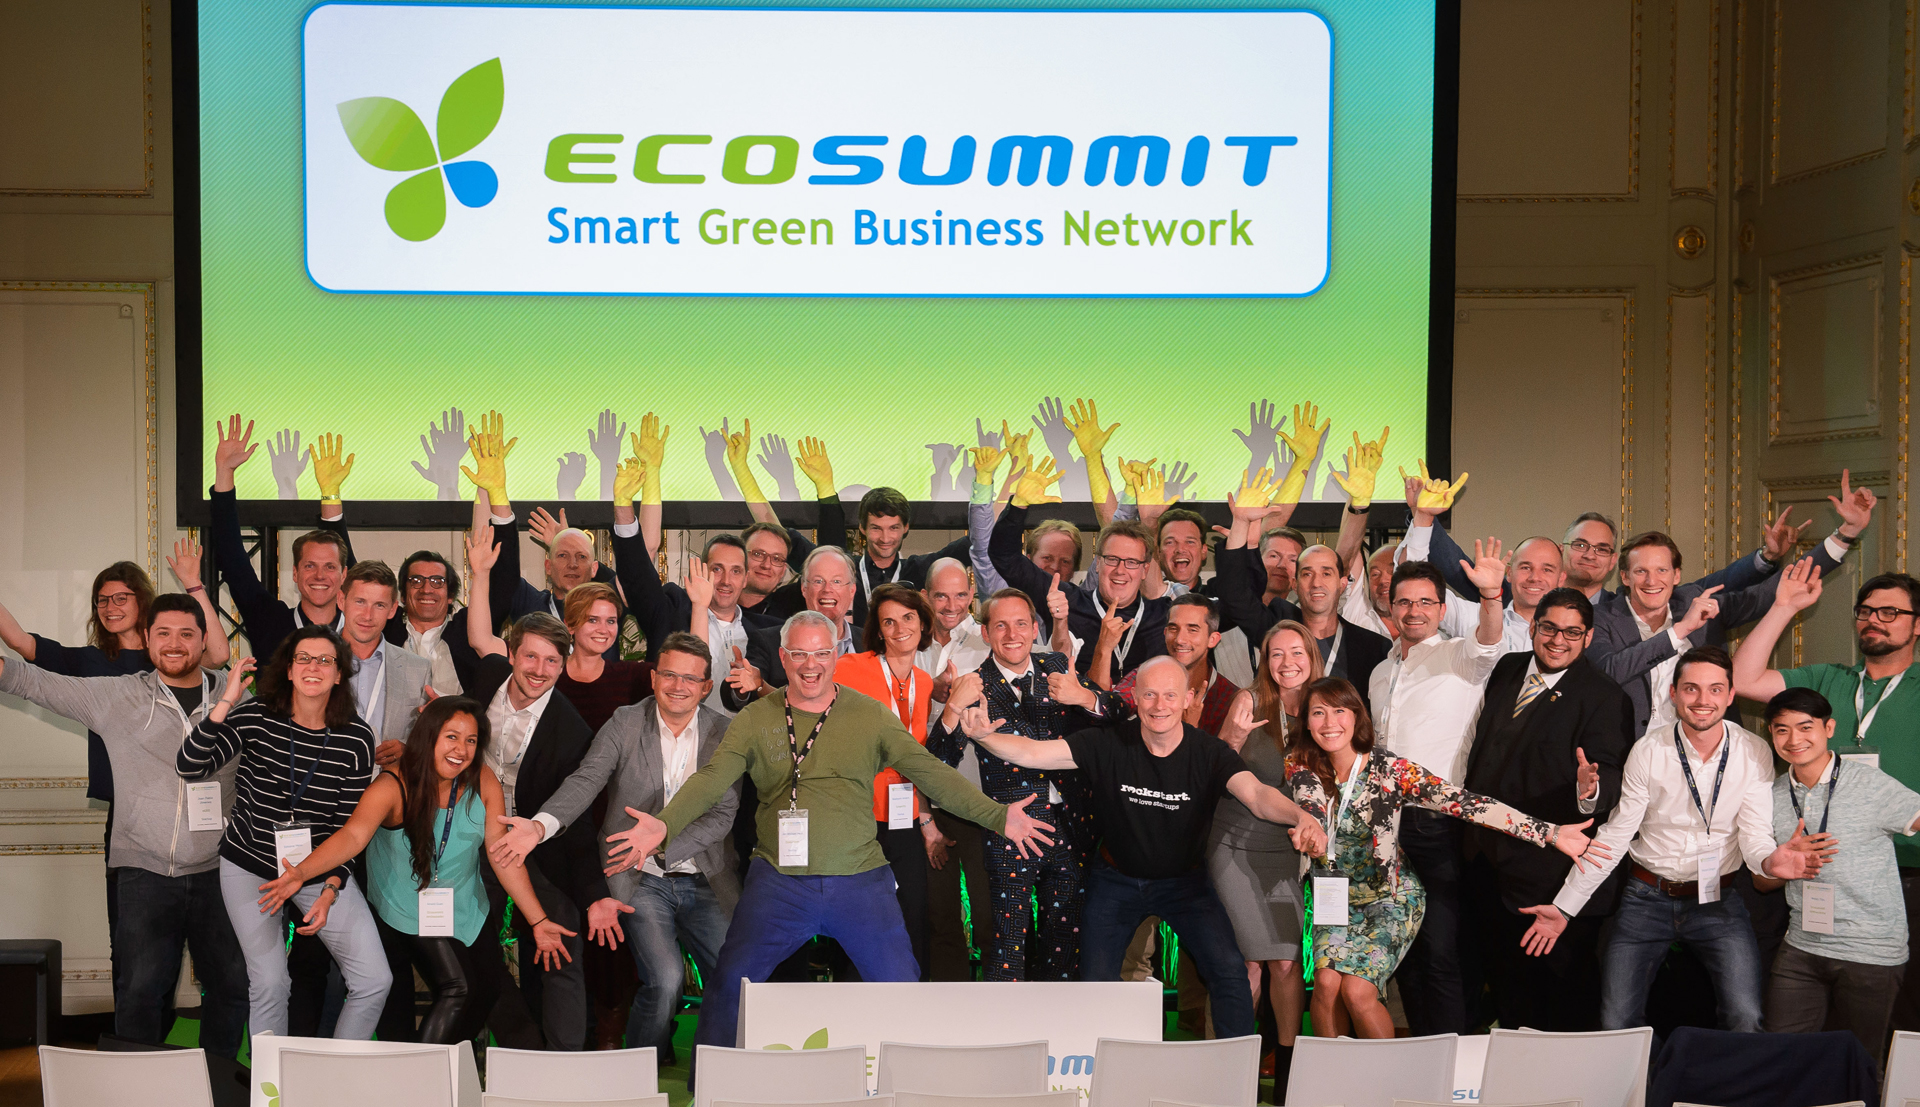 Smart Green Business Network Ecosummit 2016 Amsterdam